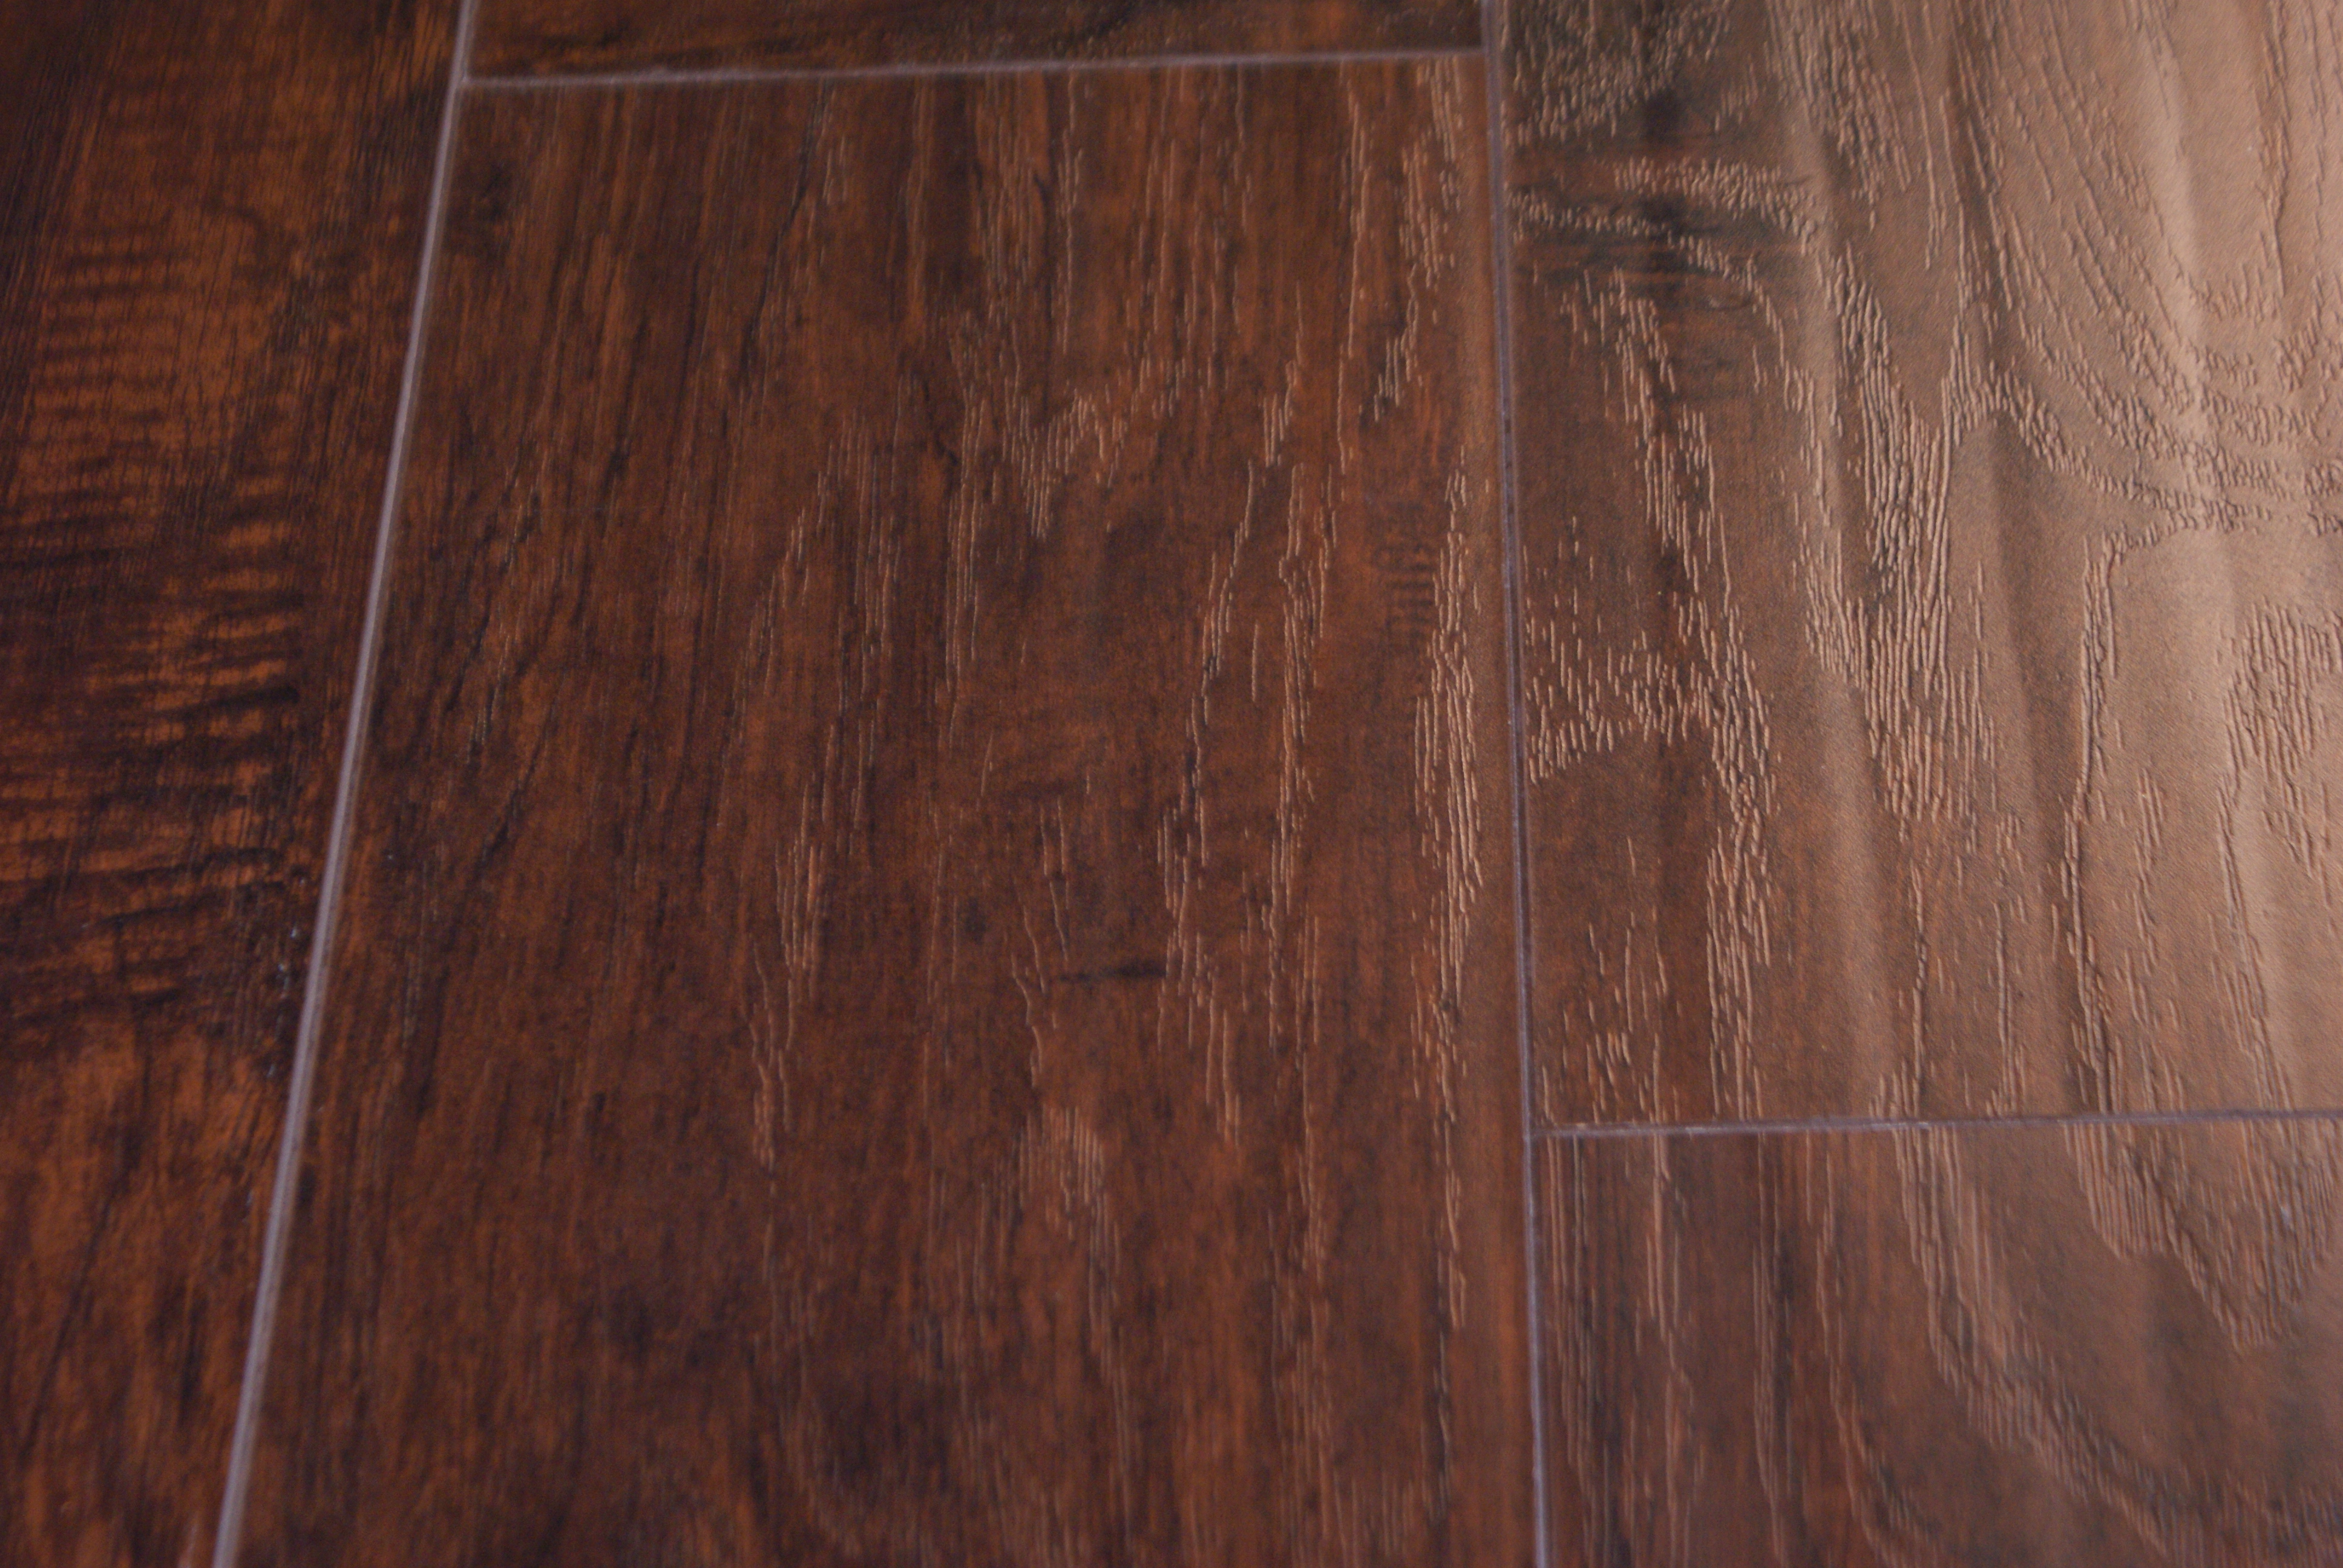 Parkay textures chocolate arcosan floors for Parkay laminate flooring